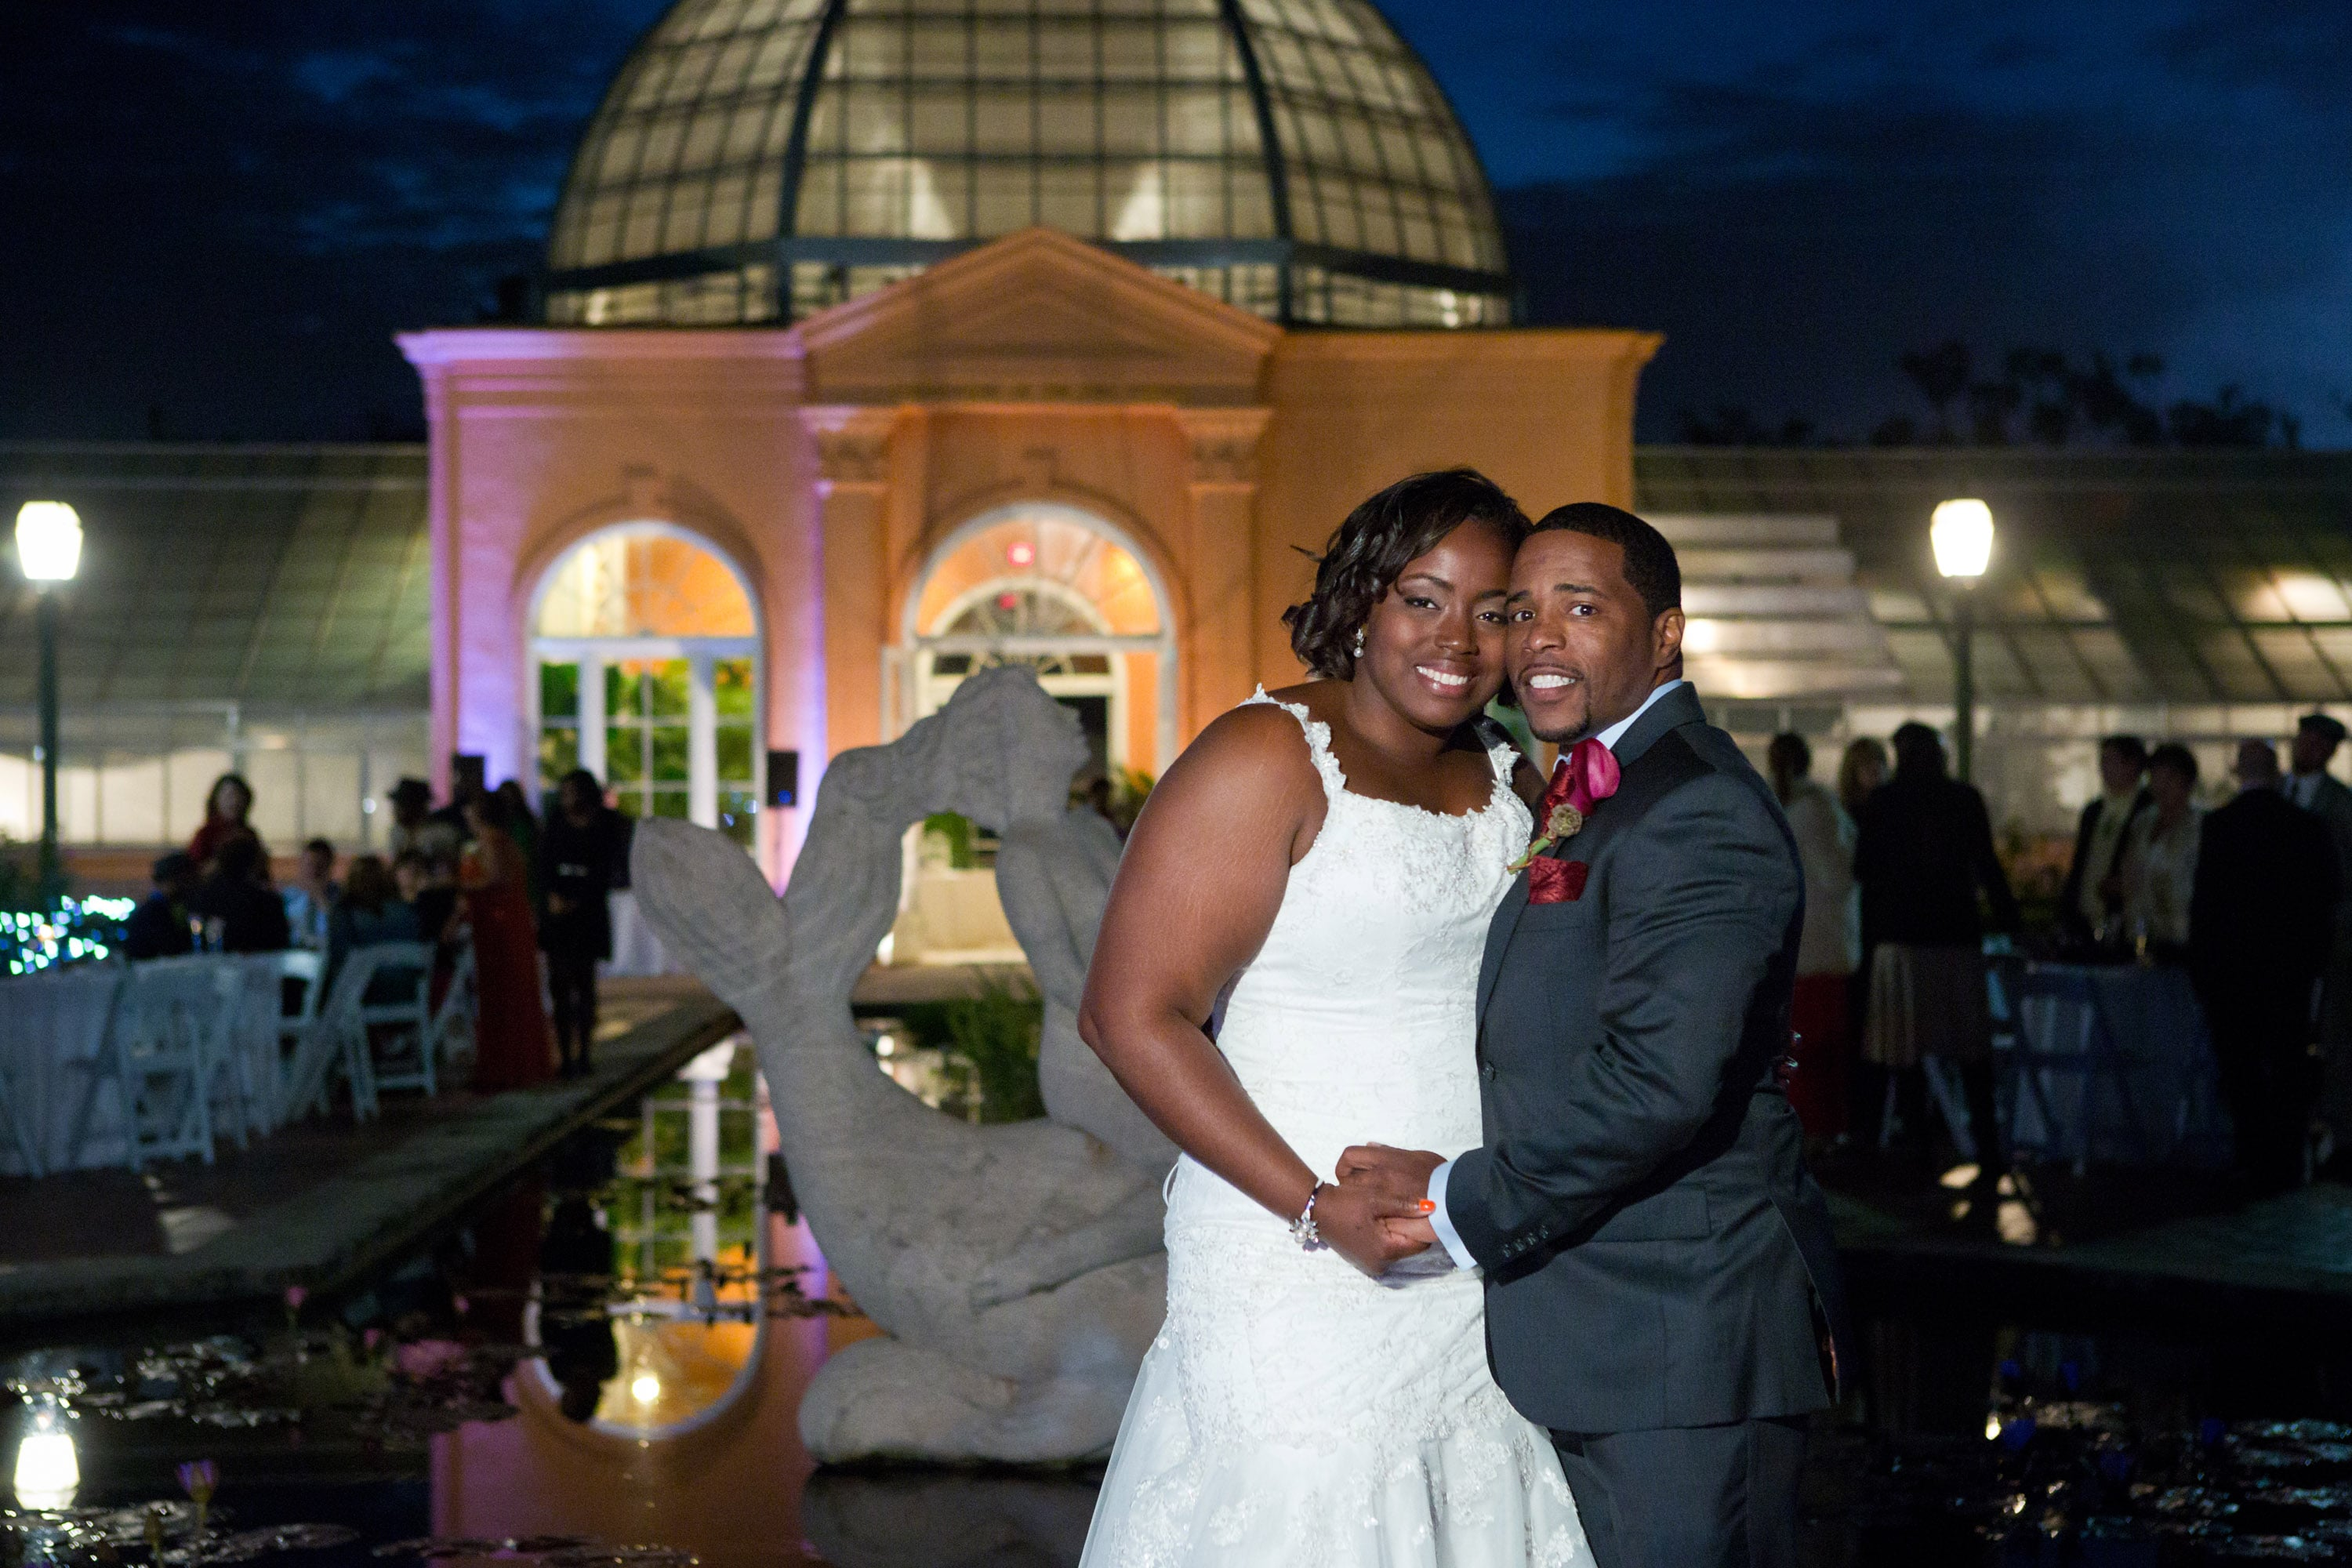 REAL WEDDING:: Intimate Garden Ceremony In City Park {Lamar + Patrice}